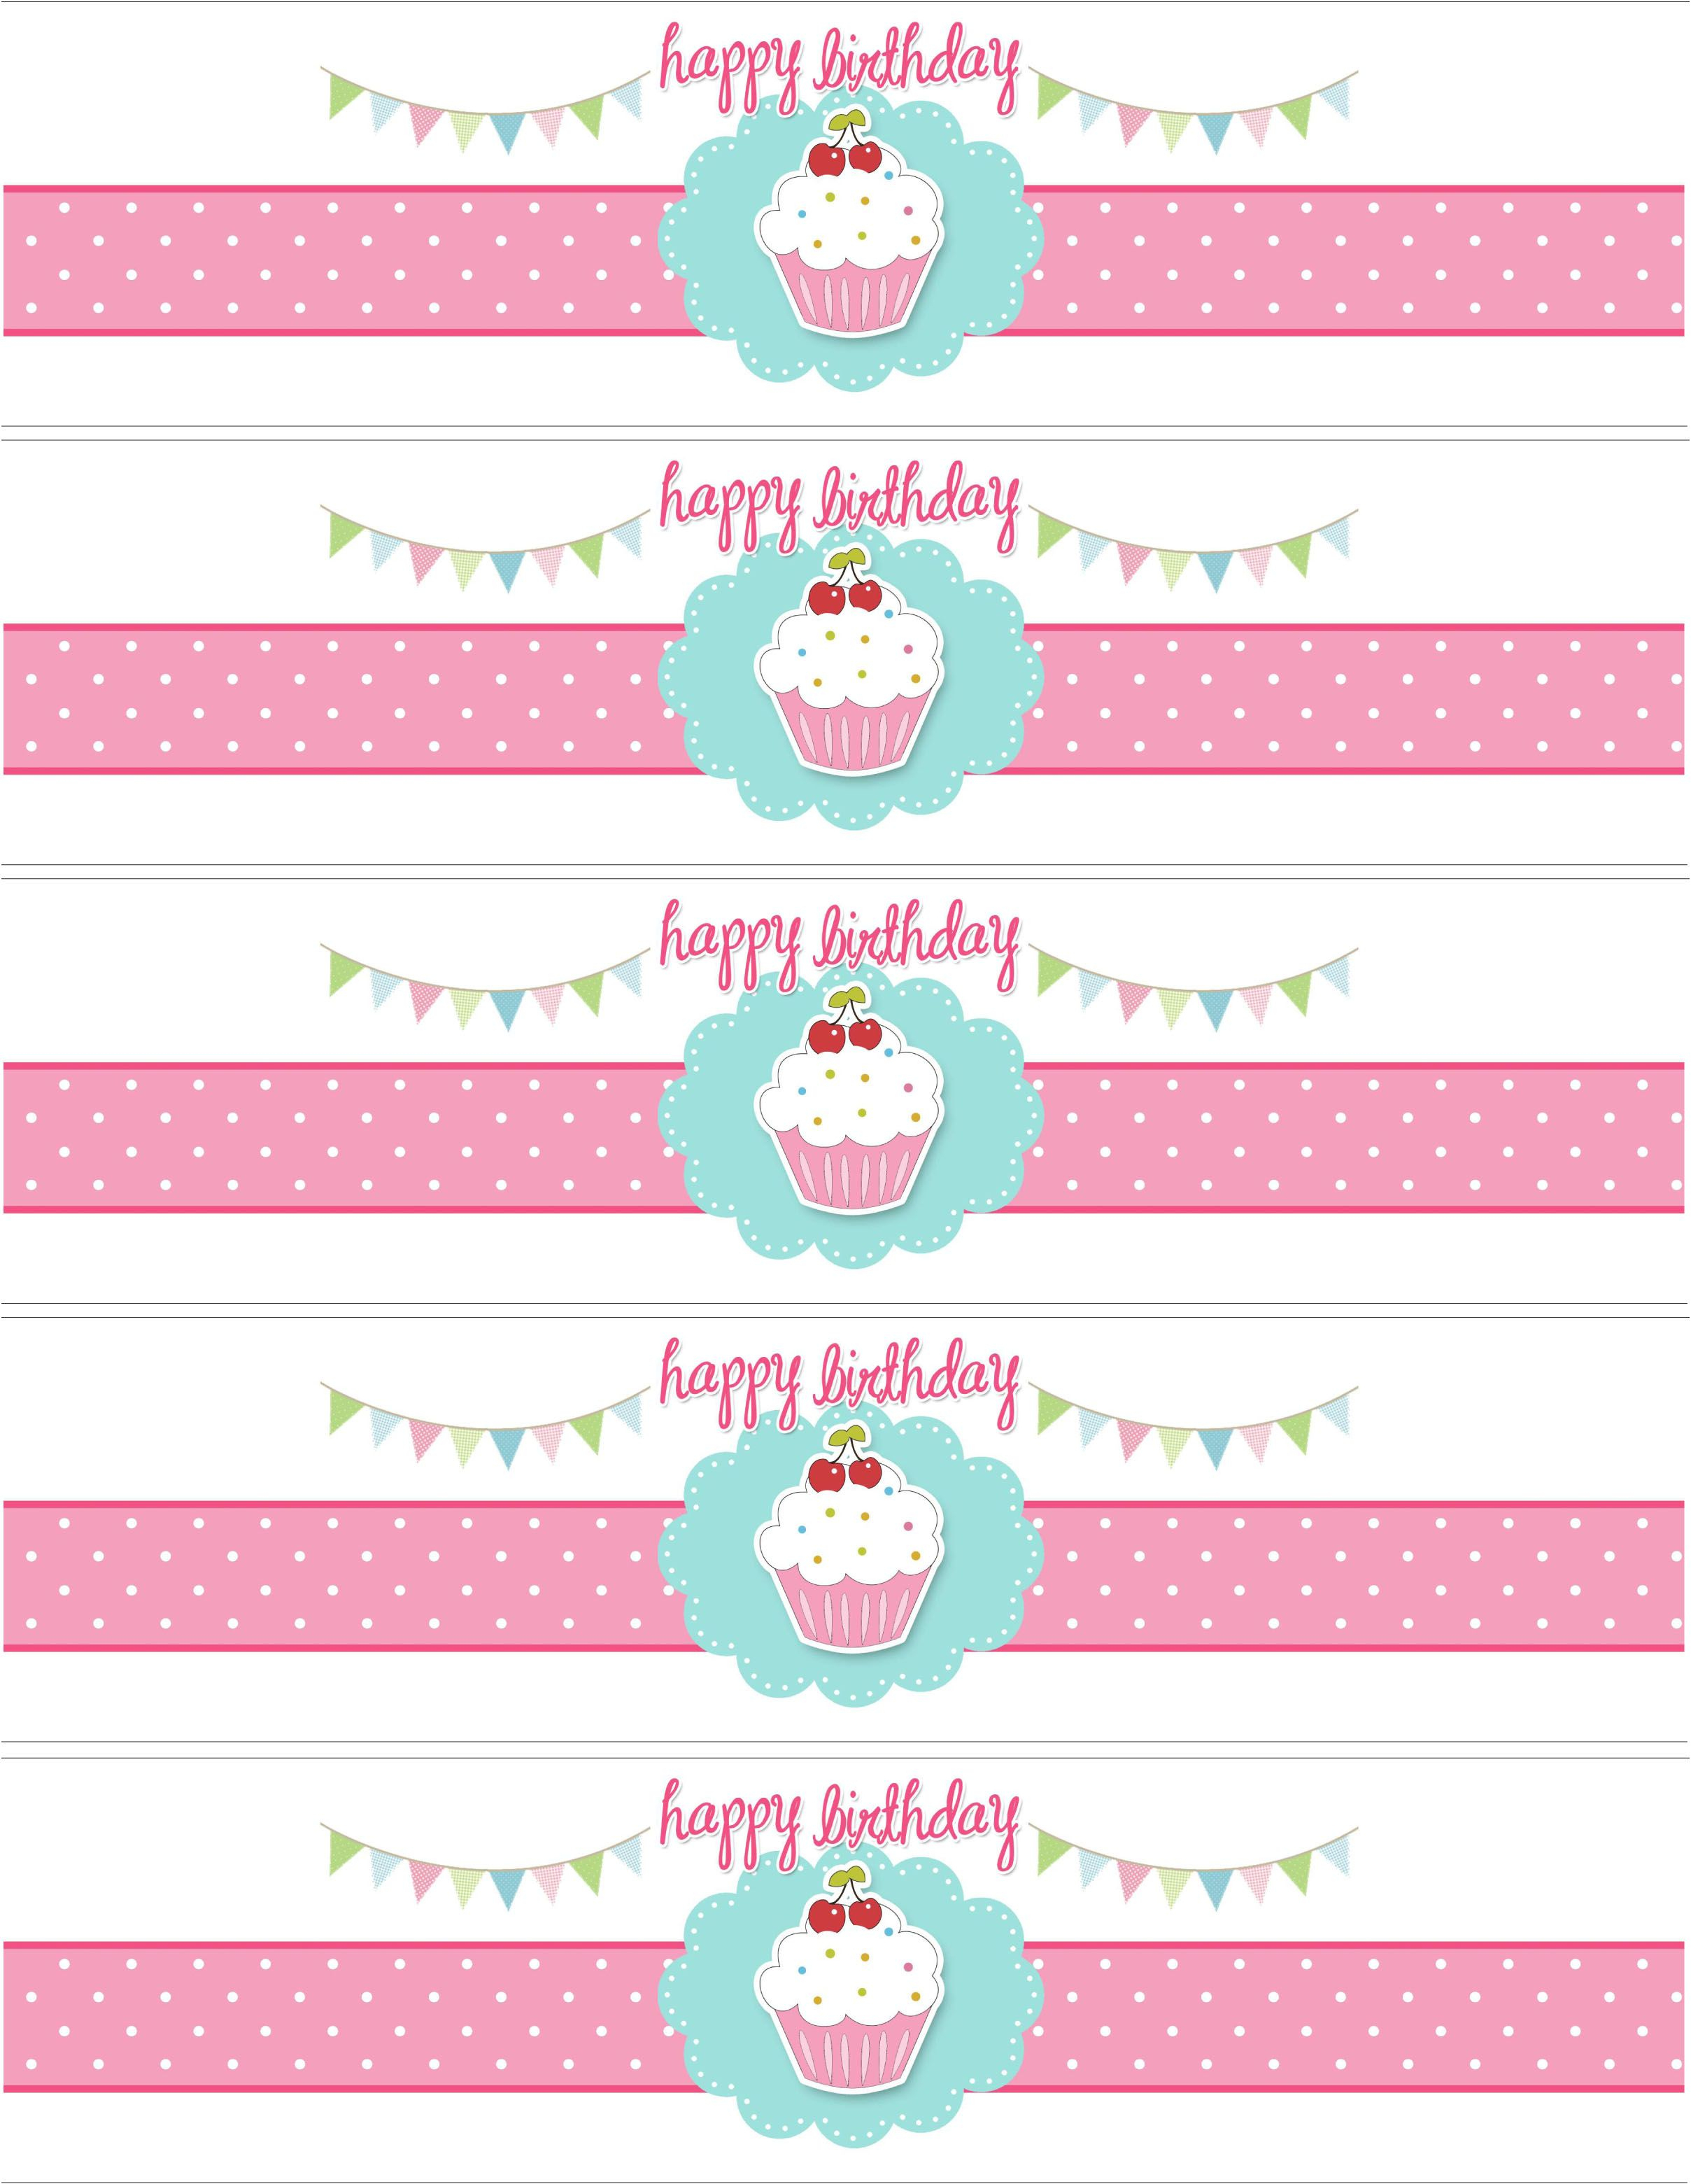 Cupcake Birthday Party With Free Printables | Diy-Free Printables - Free Printable Labels For Bottles